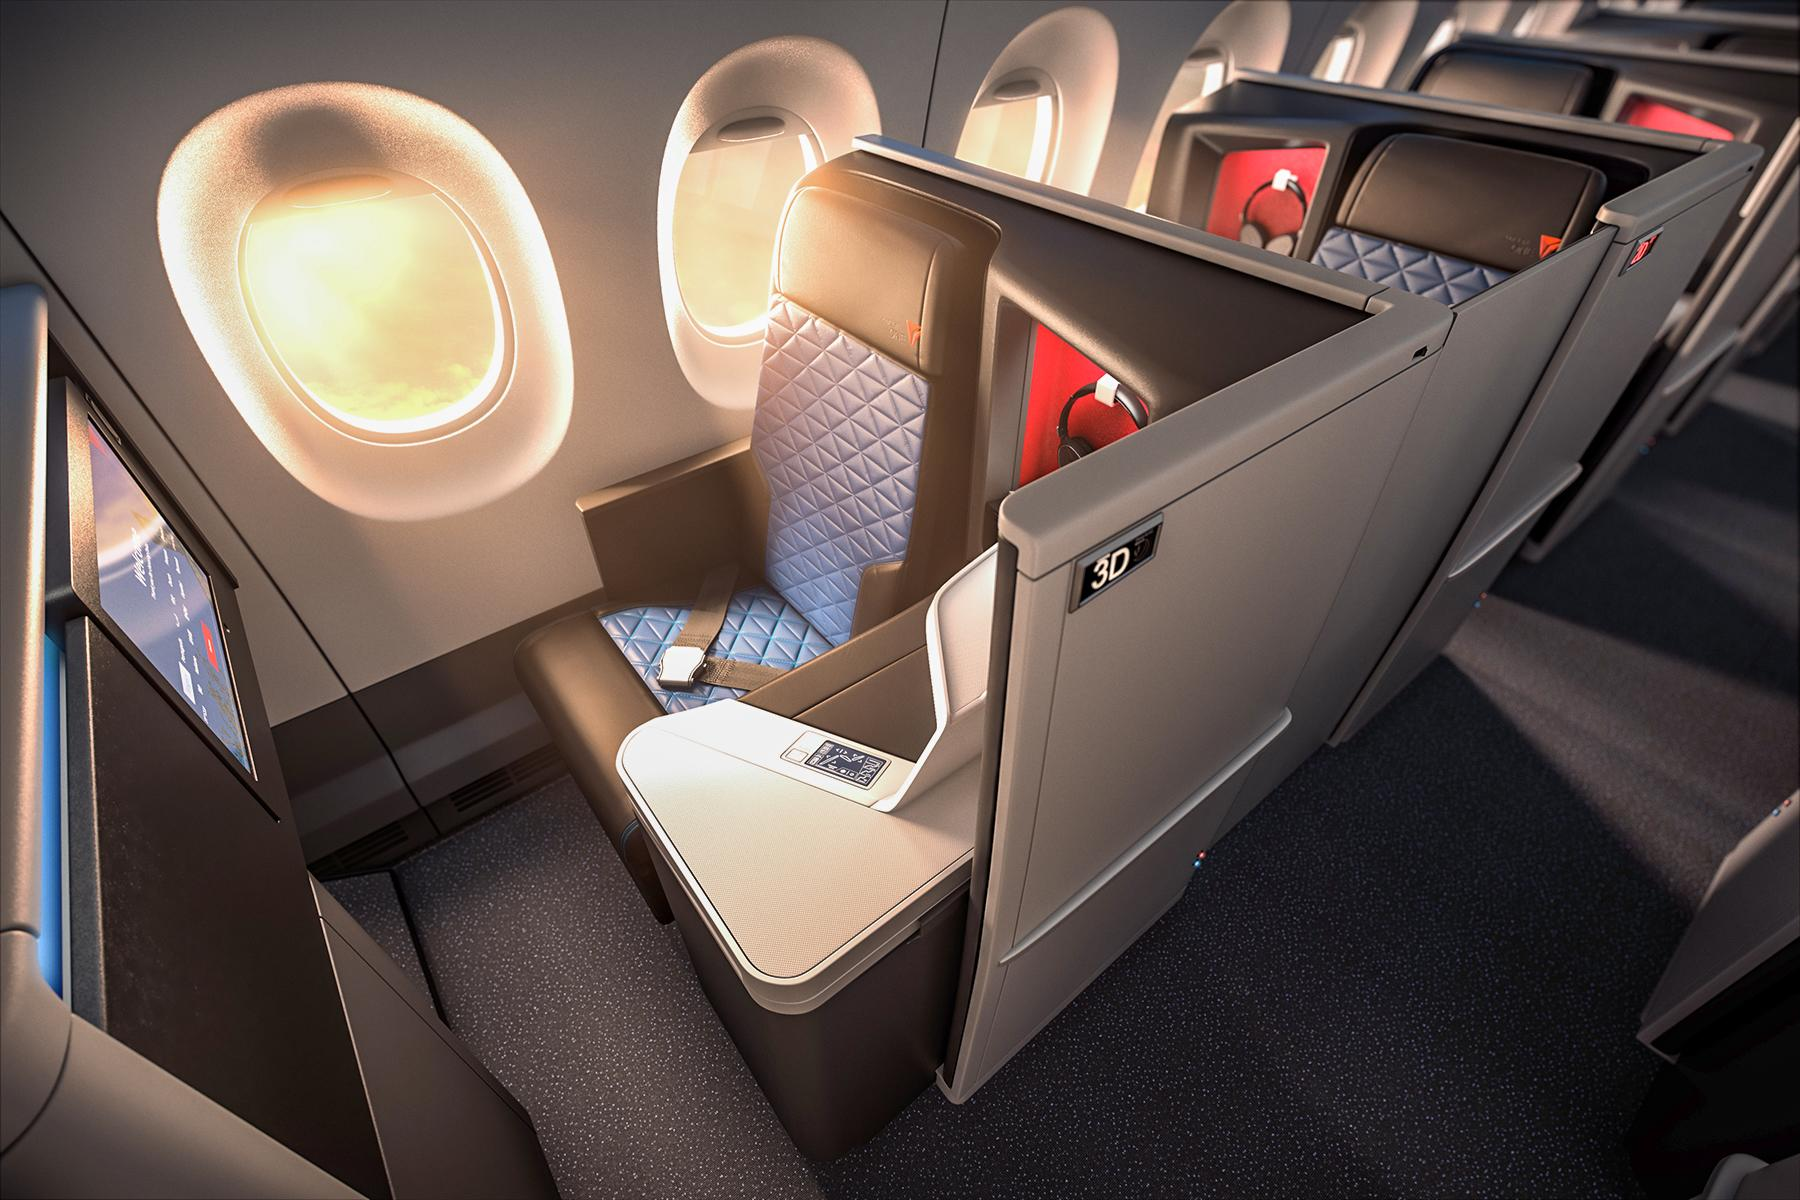 The Best Airlines in the World